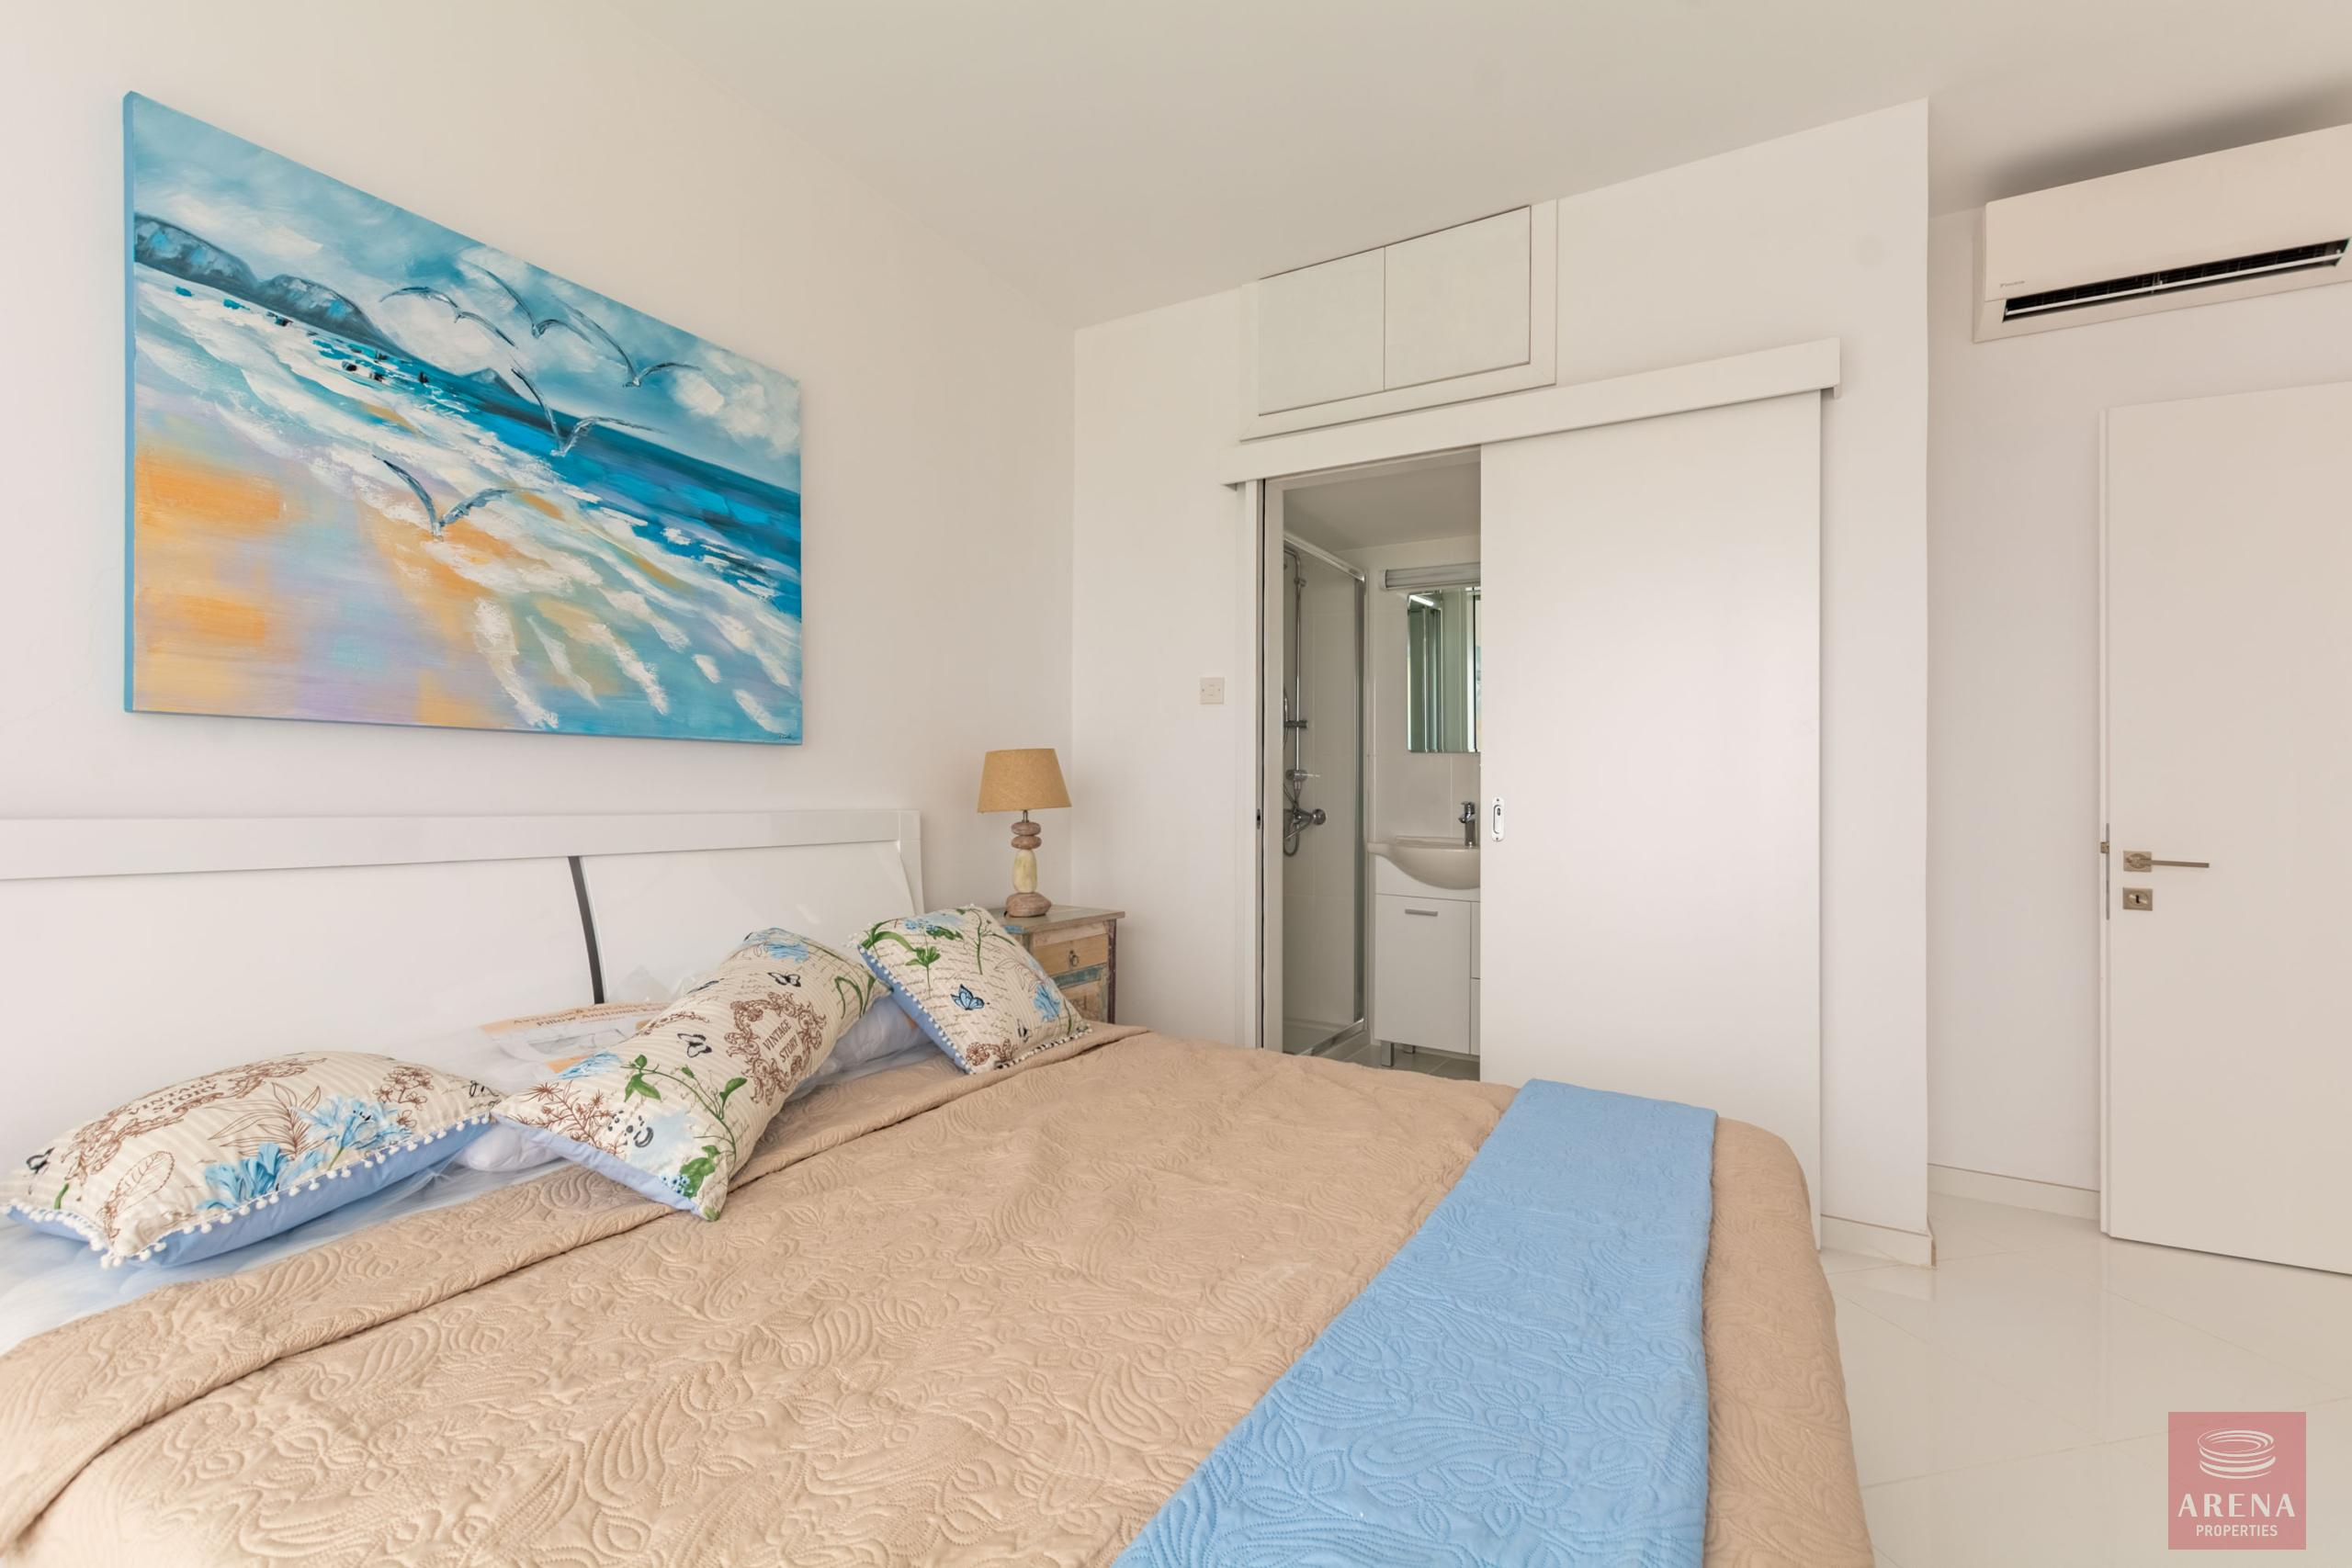 Apartment in Ayia Triada for sale - bedroom